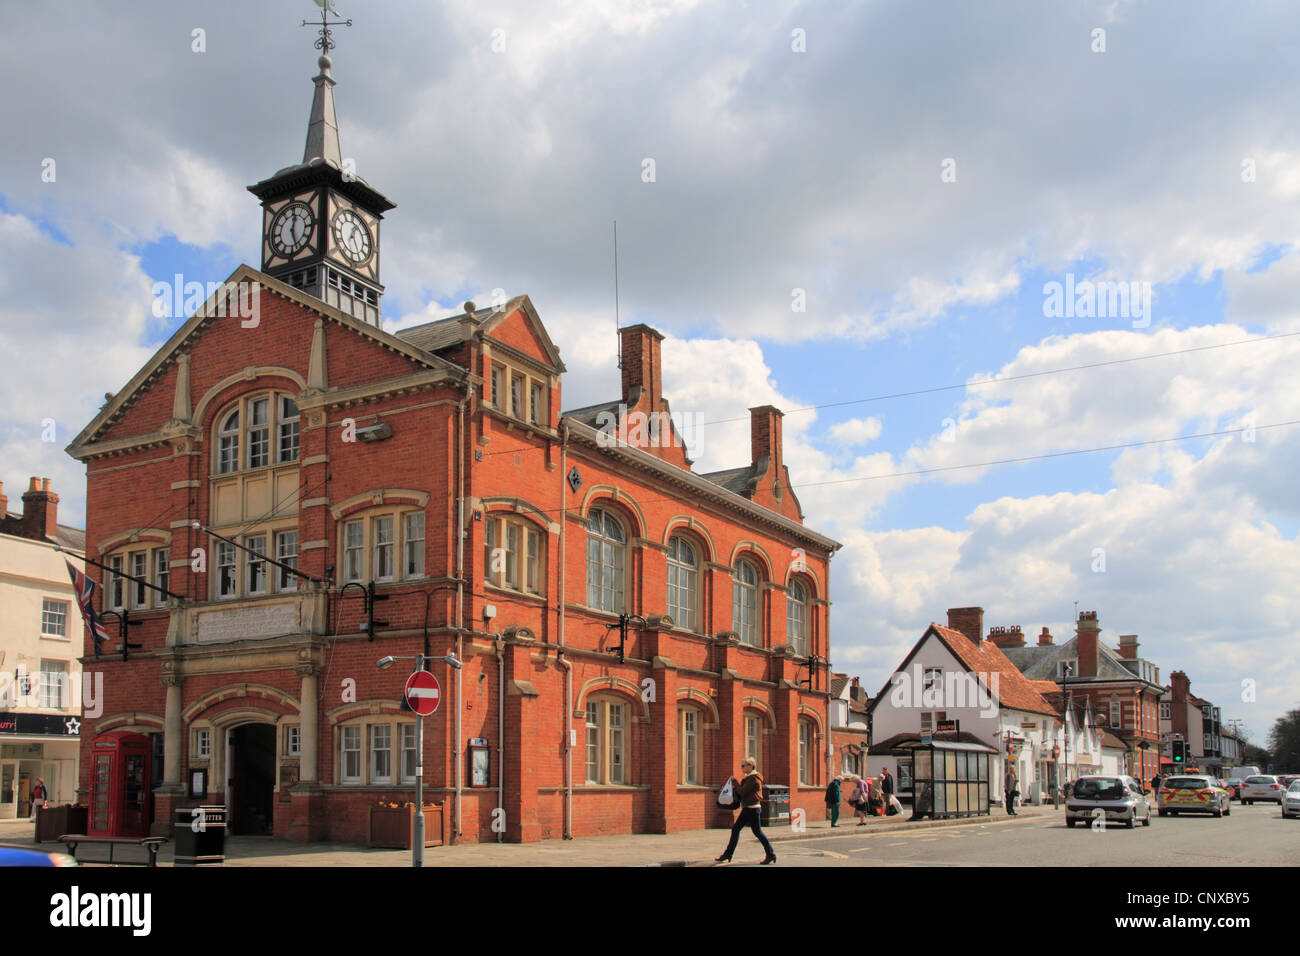 England Oxfordshire Thame High street Town hall - Stock Image